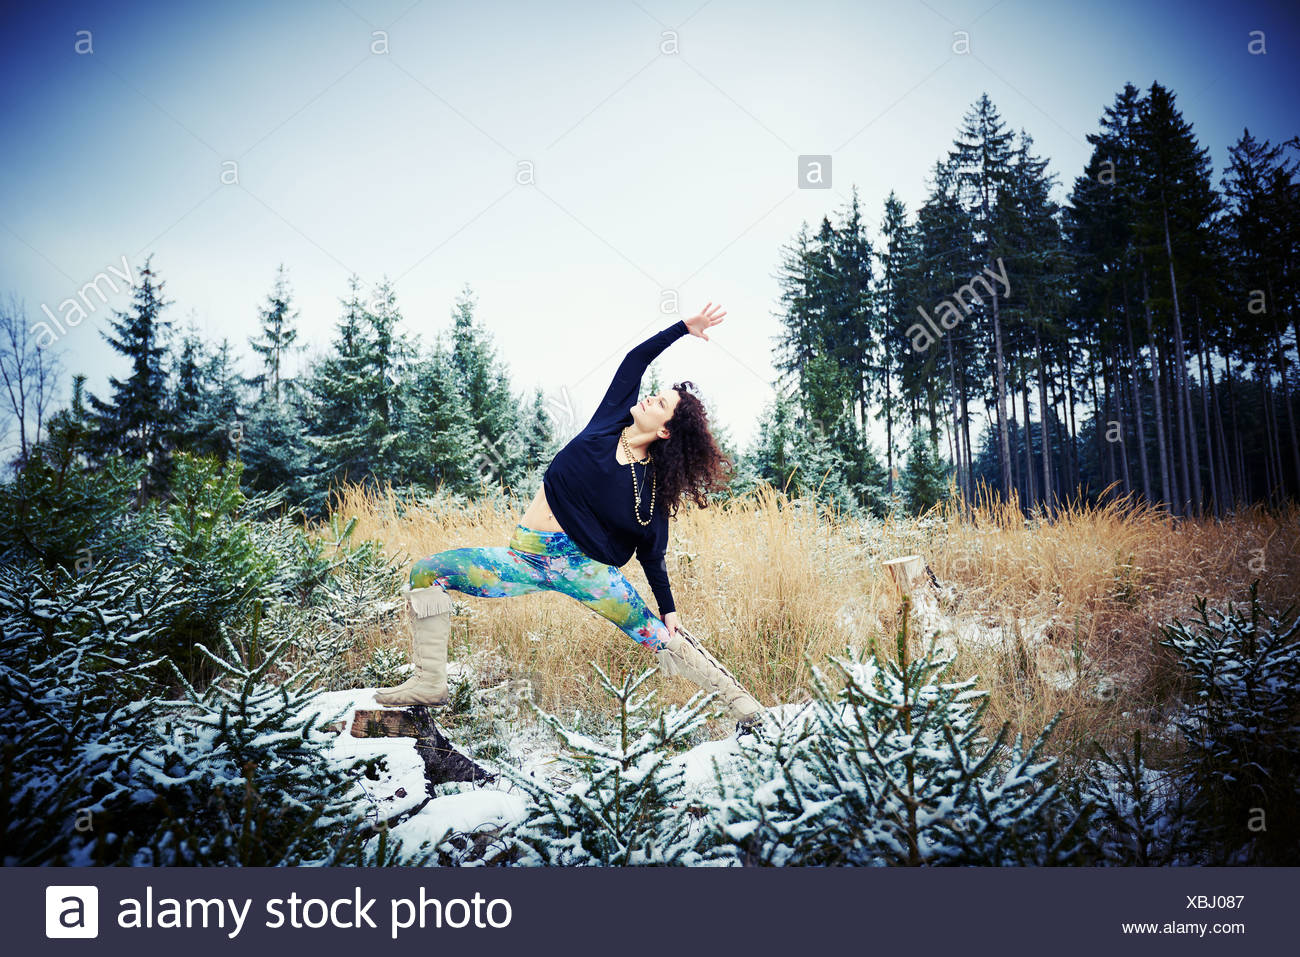 Mid adult woman practicing yoga in forest Photo Stock